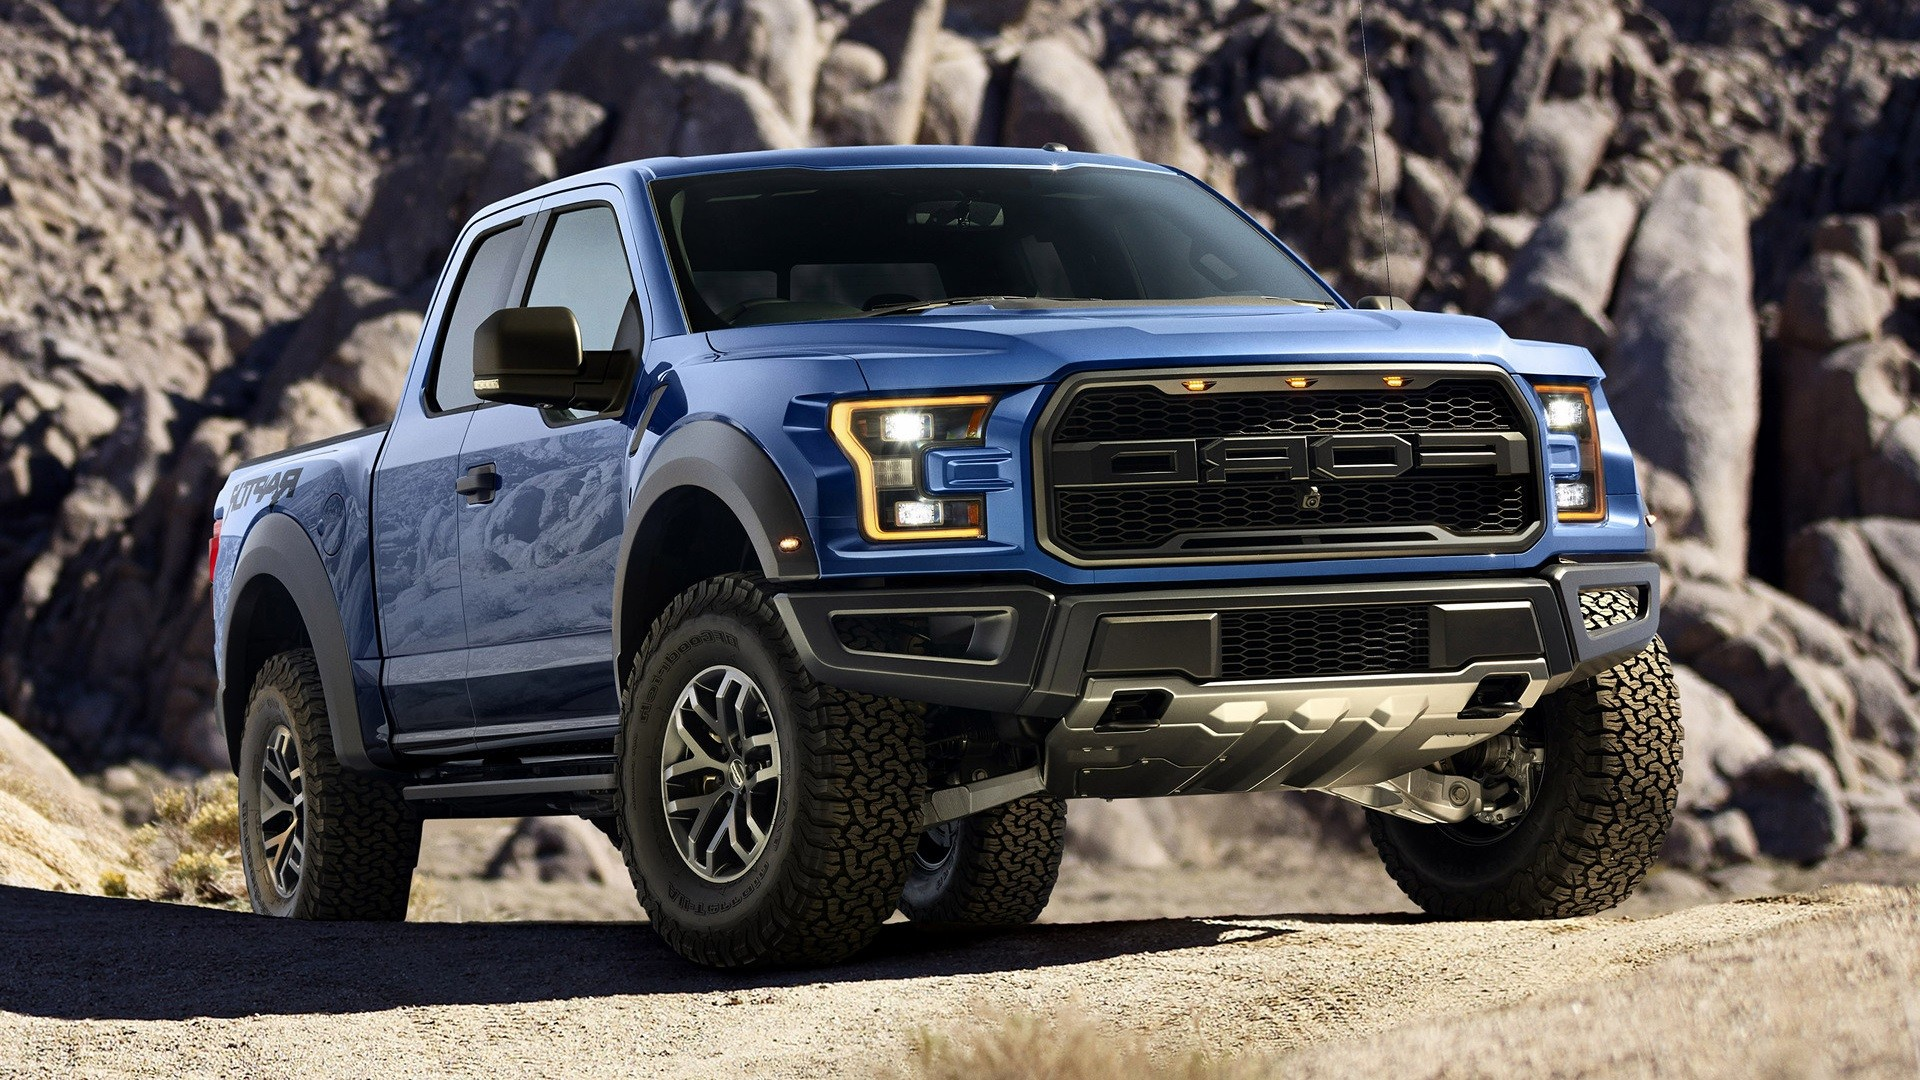 1920x1080 Ford f 150 raptor supercab wallpapers hd